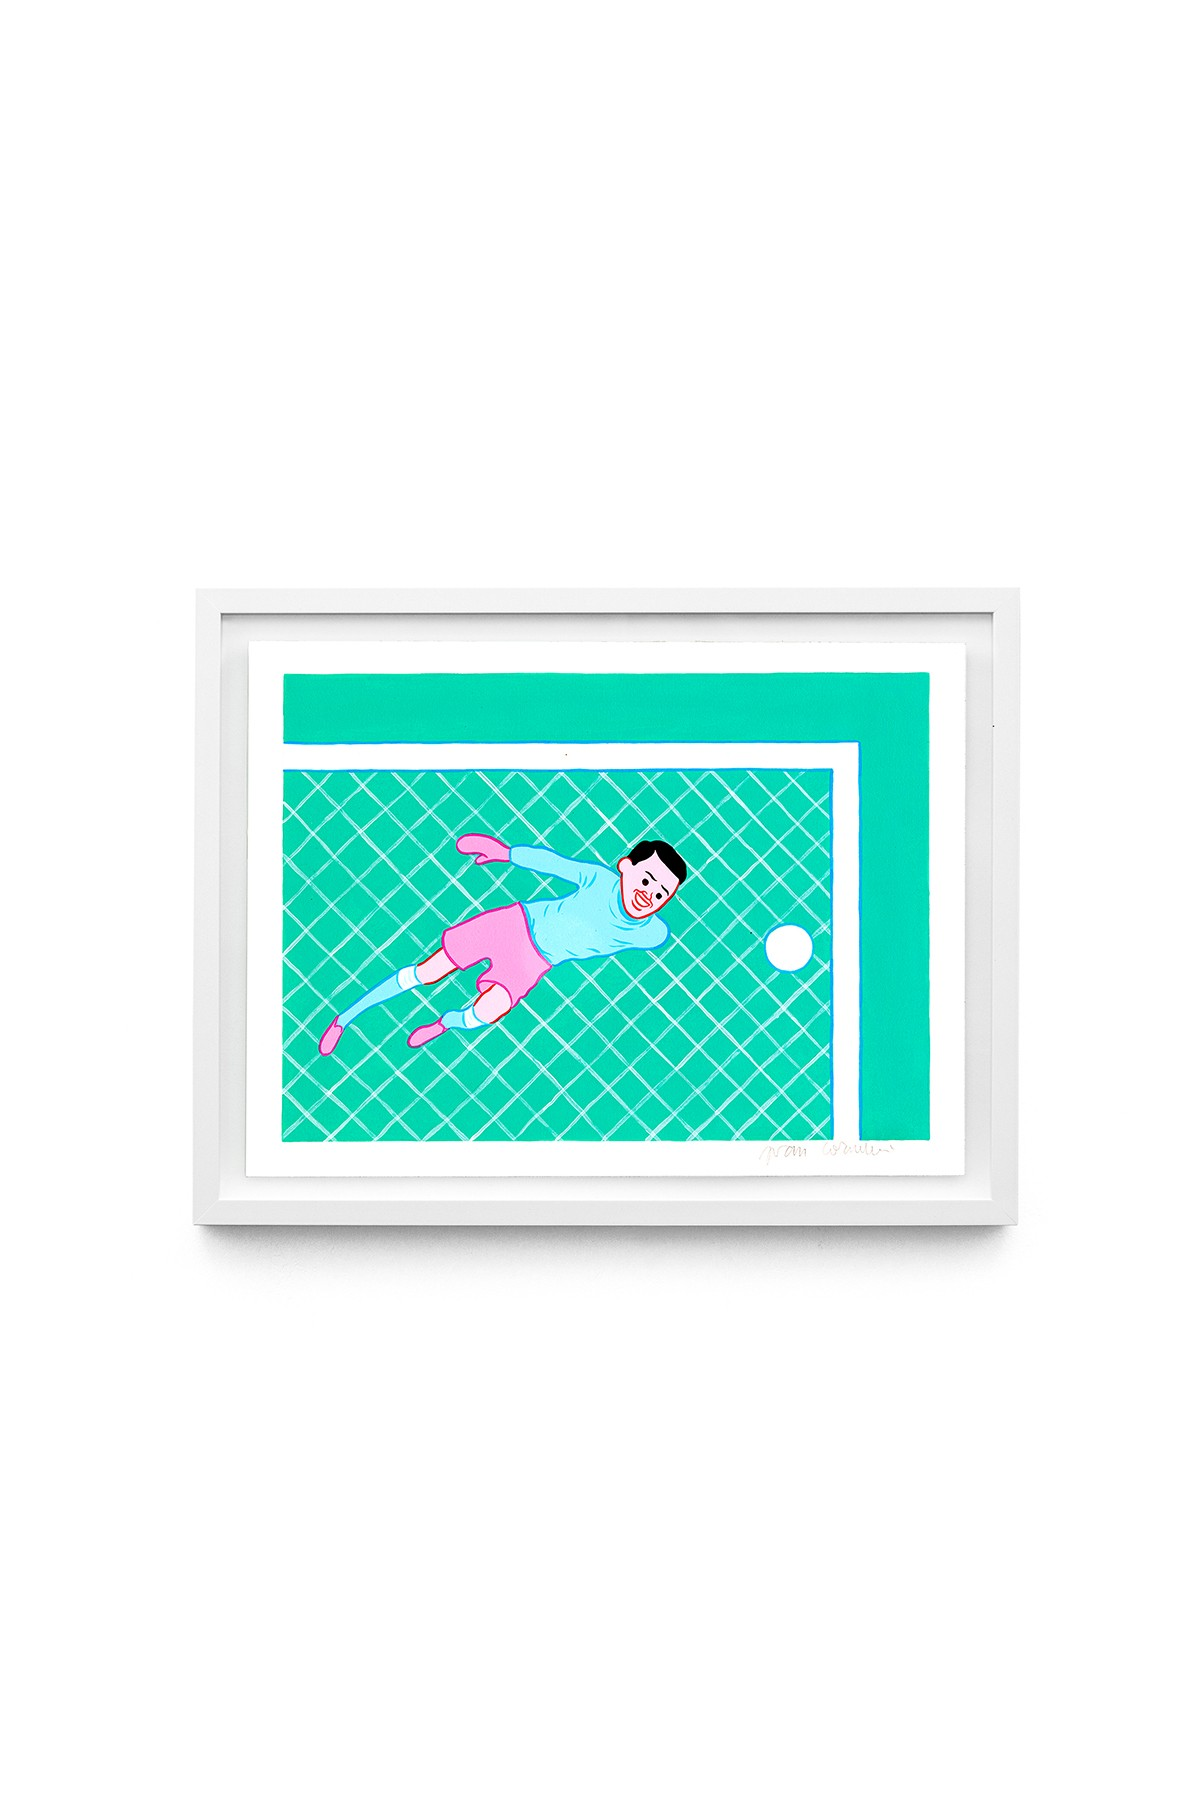 Joan Cornellà hk sotheby's AllRightsReserved selling exhibition my life pointless